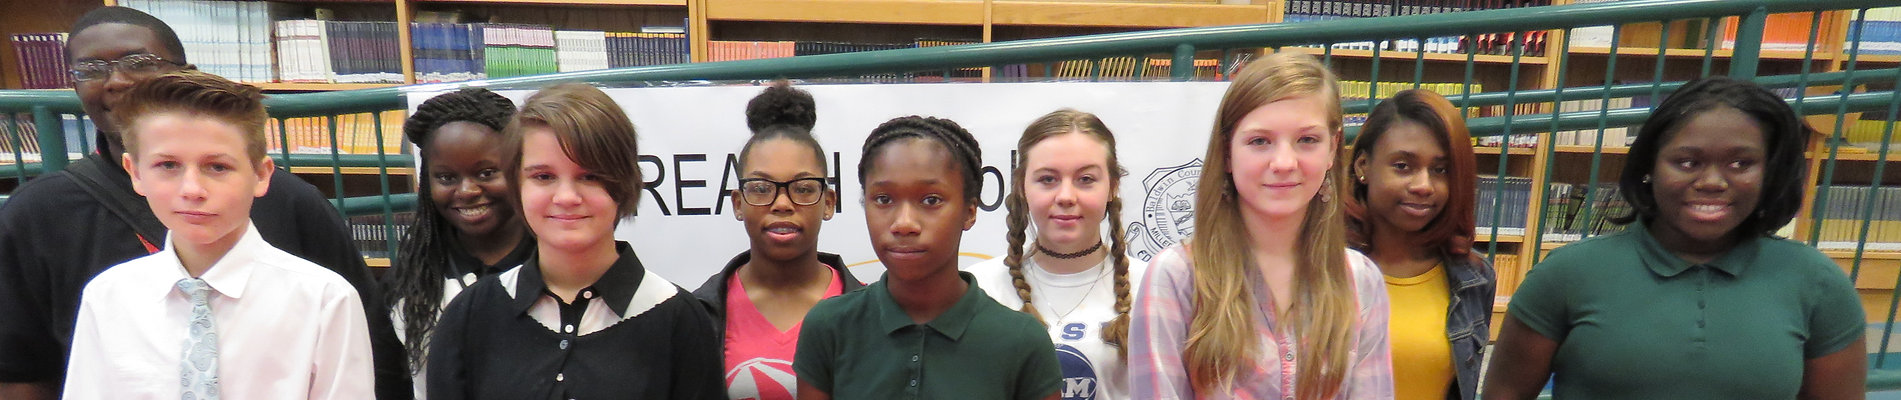 Both cohorts of REACH scholars.